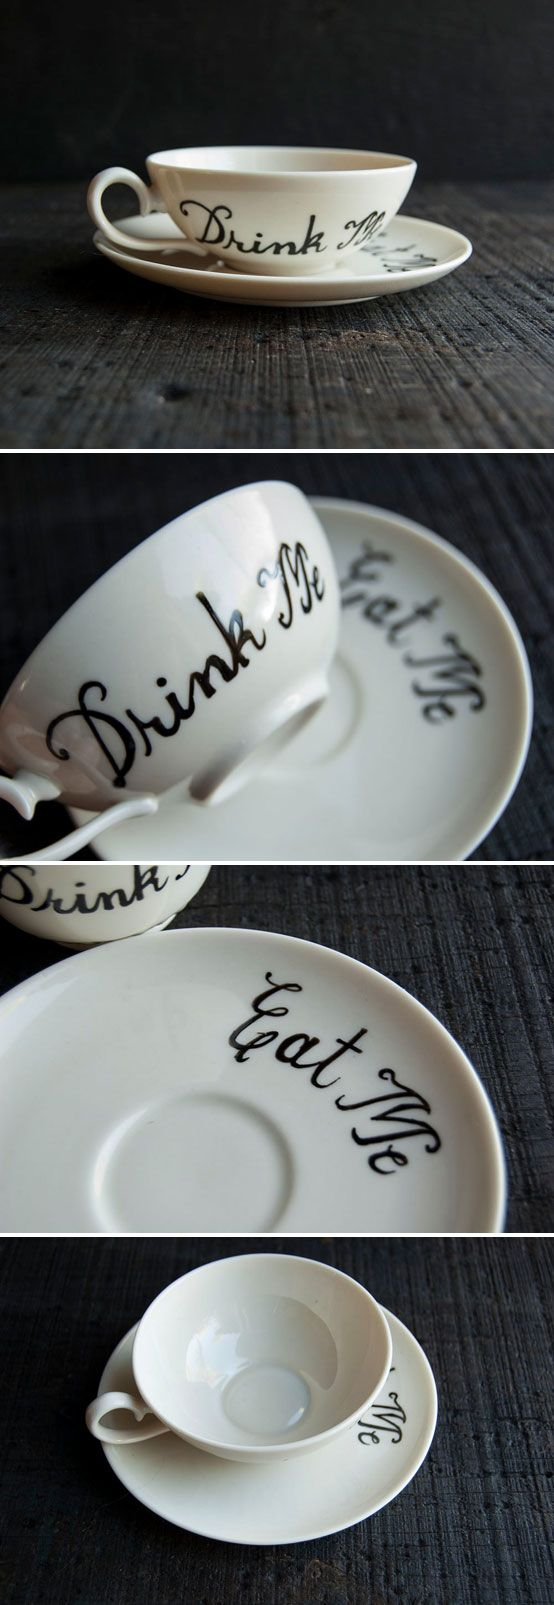 "Hand painted ""Drink Me"" teacup w/ ""Eat Me"" saucer... I've been looking for the perfect teacup & saucer to make myself a set! 